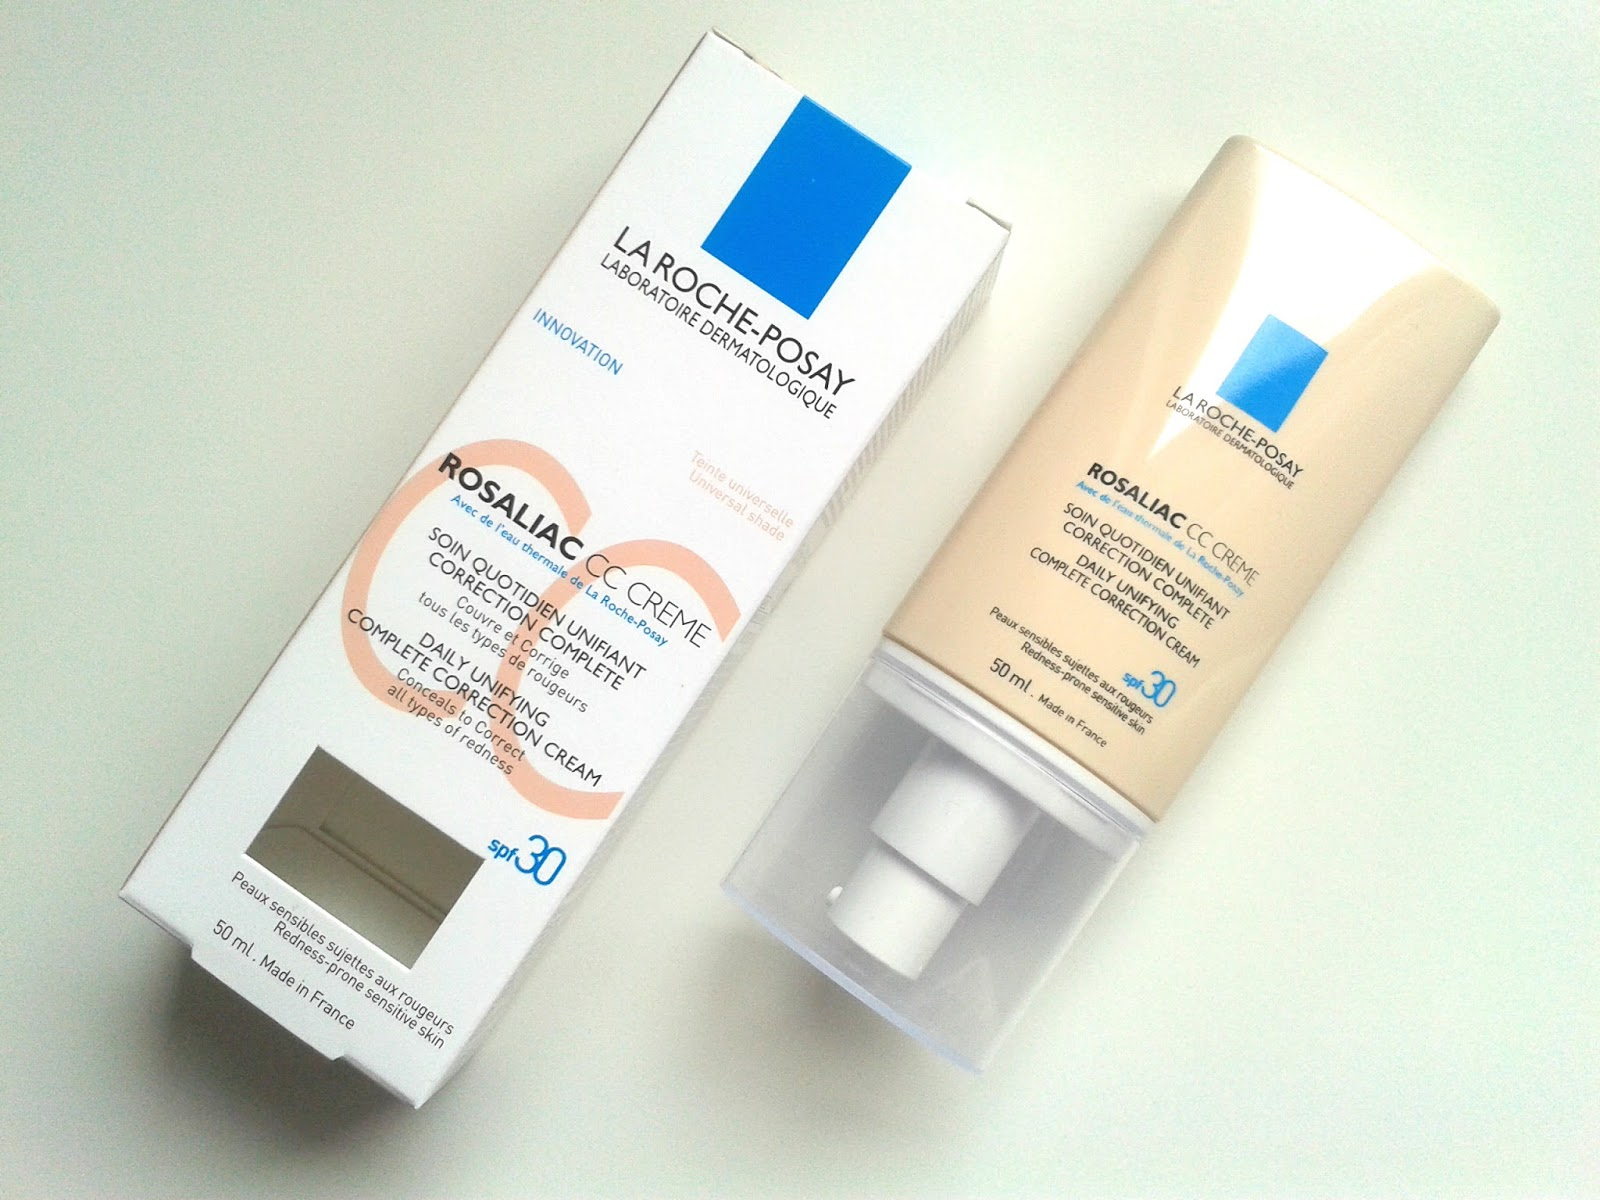 La Roche-Posay Rosaliac CC Cream Creme Review Complete Correction